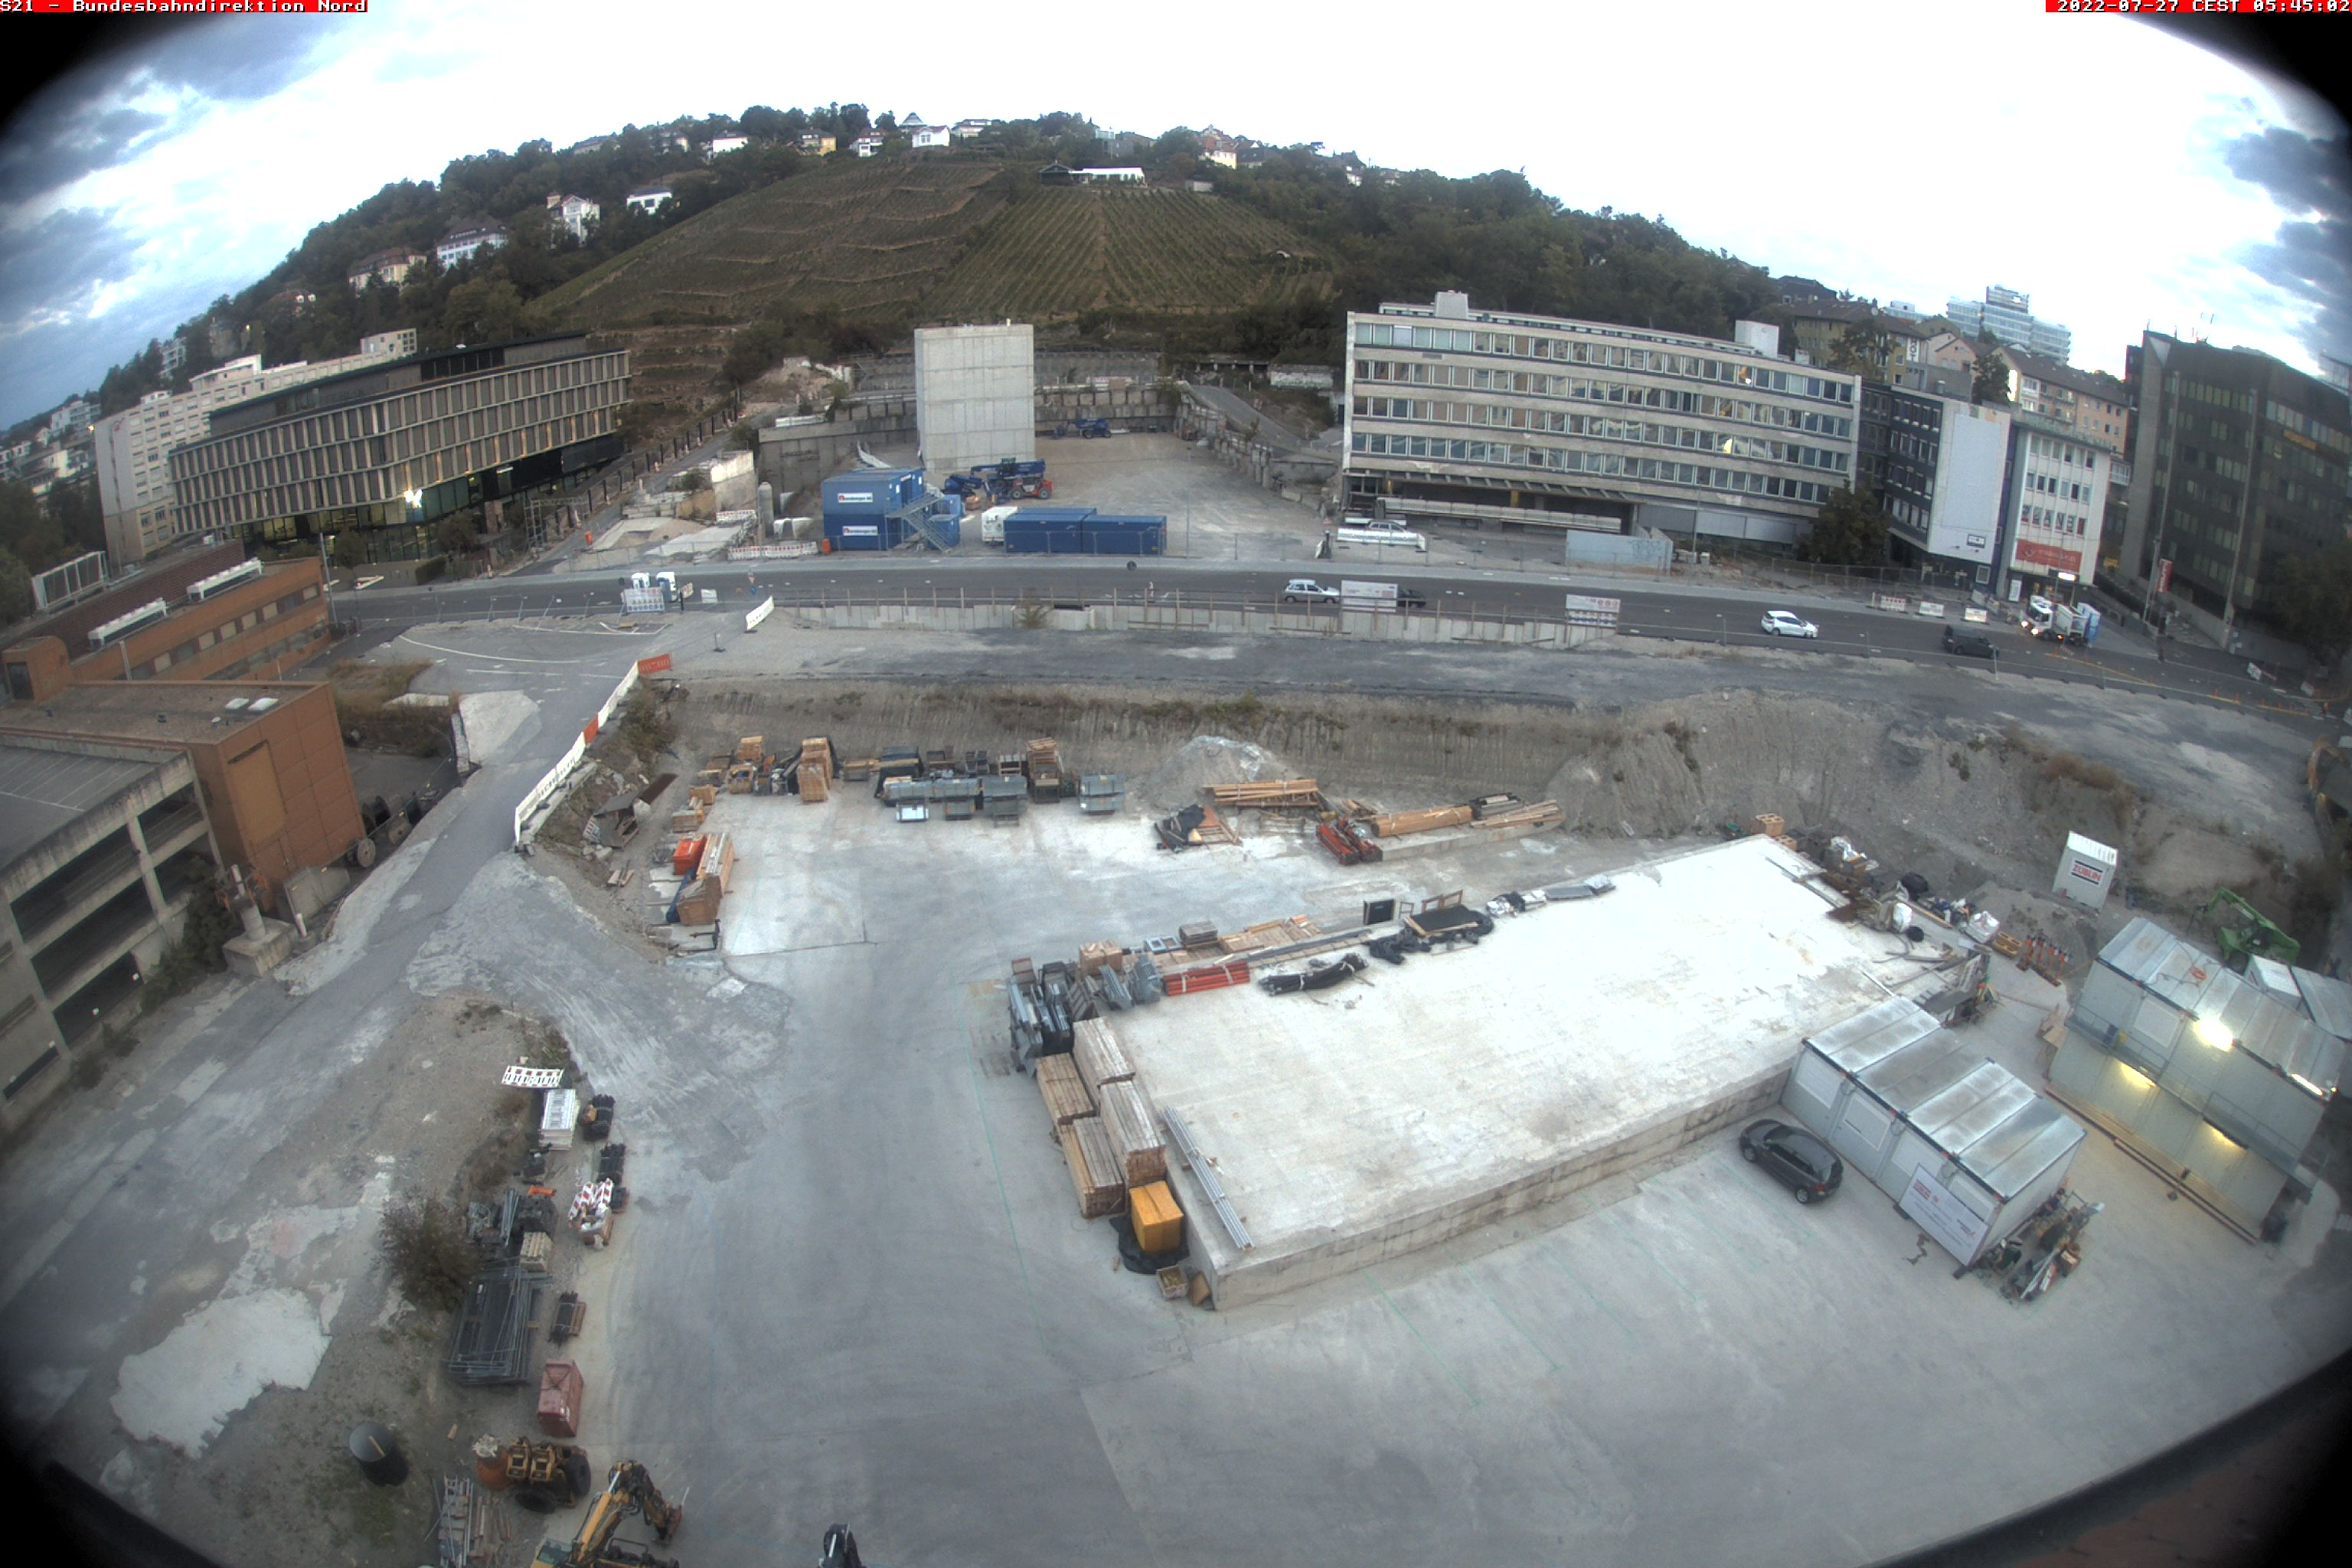 Stuttgart, Rail Construction Site, Nordkopf (Northern Head) 3